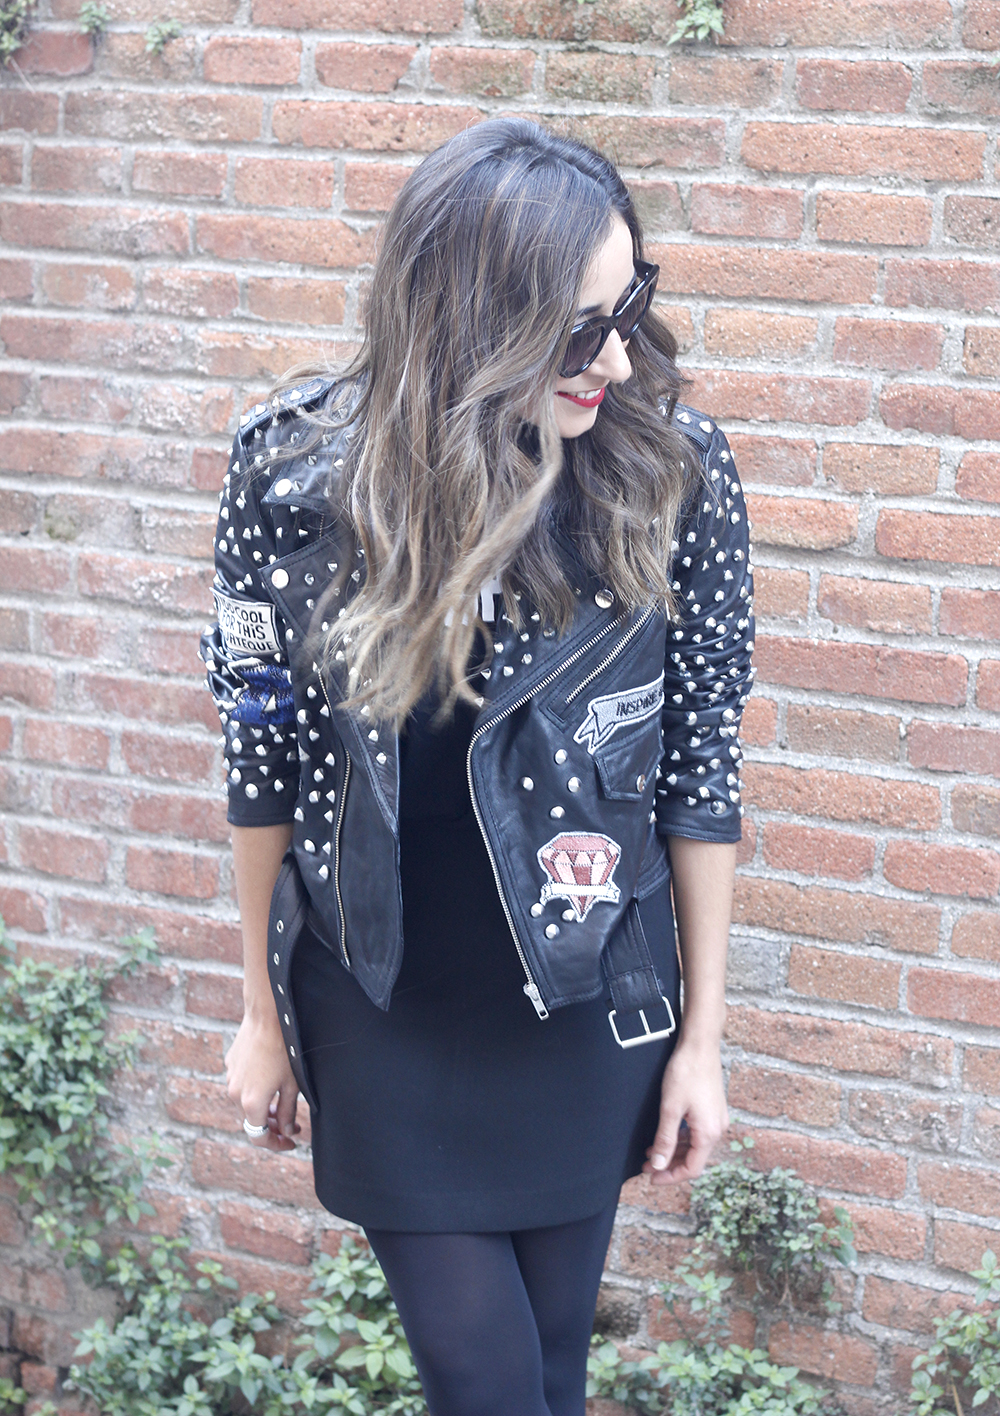 Leather jacket with studs and patches black skirt heels style fashion outfit06